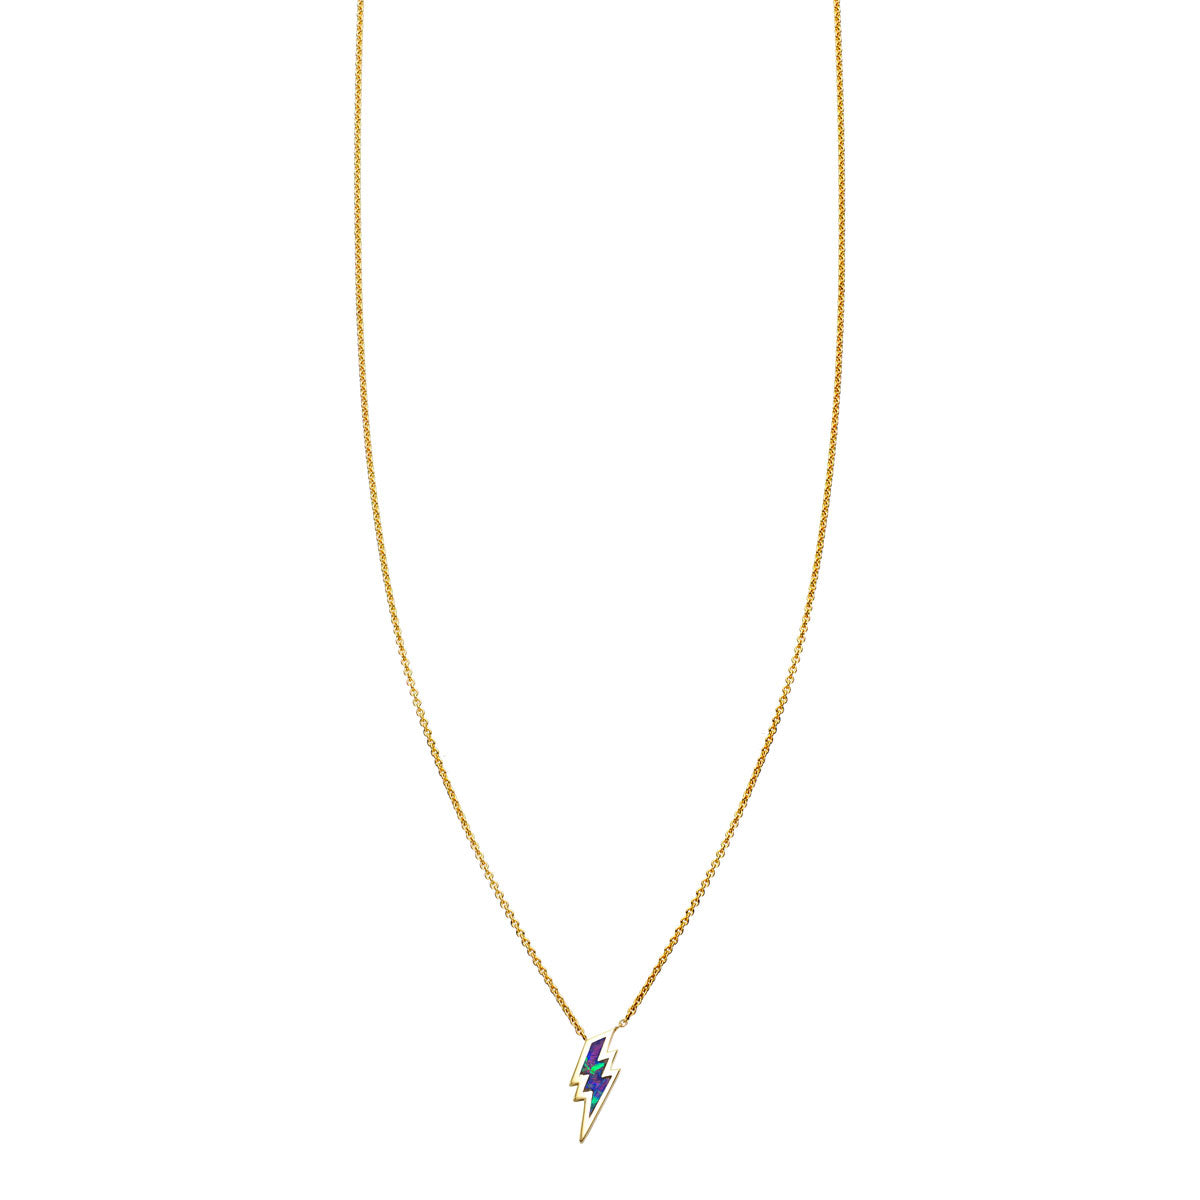 Image of Opal Inlaid Lightning Bolt Necklace